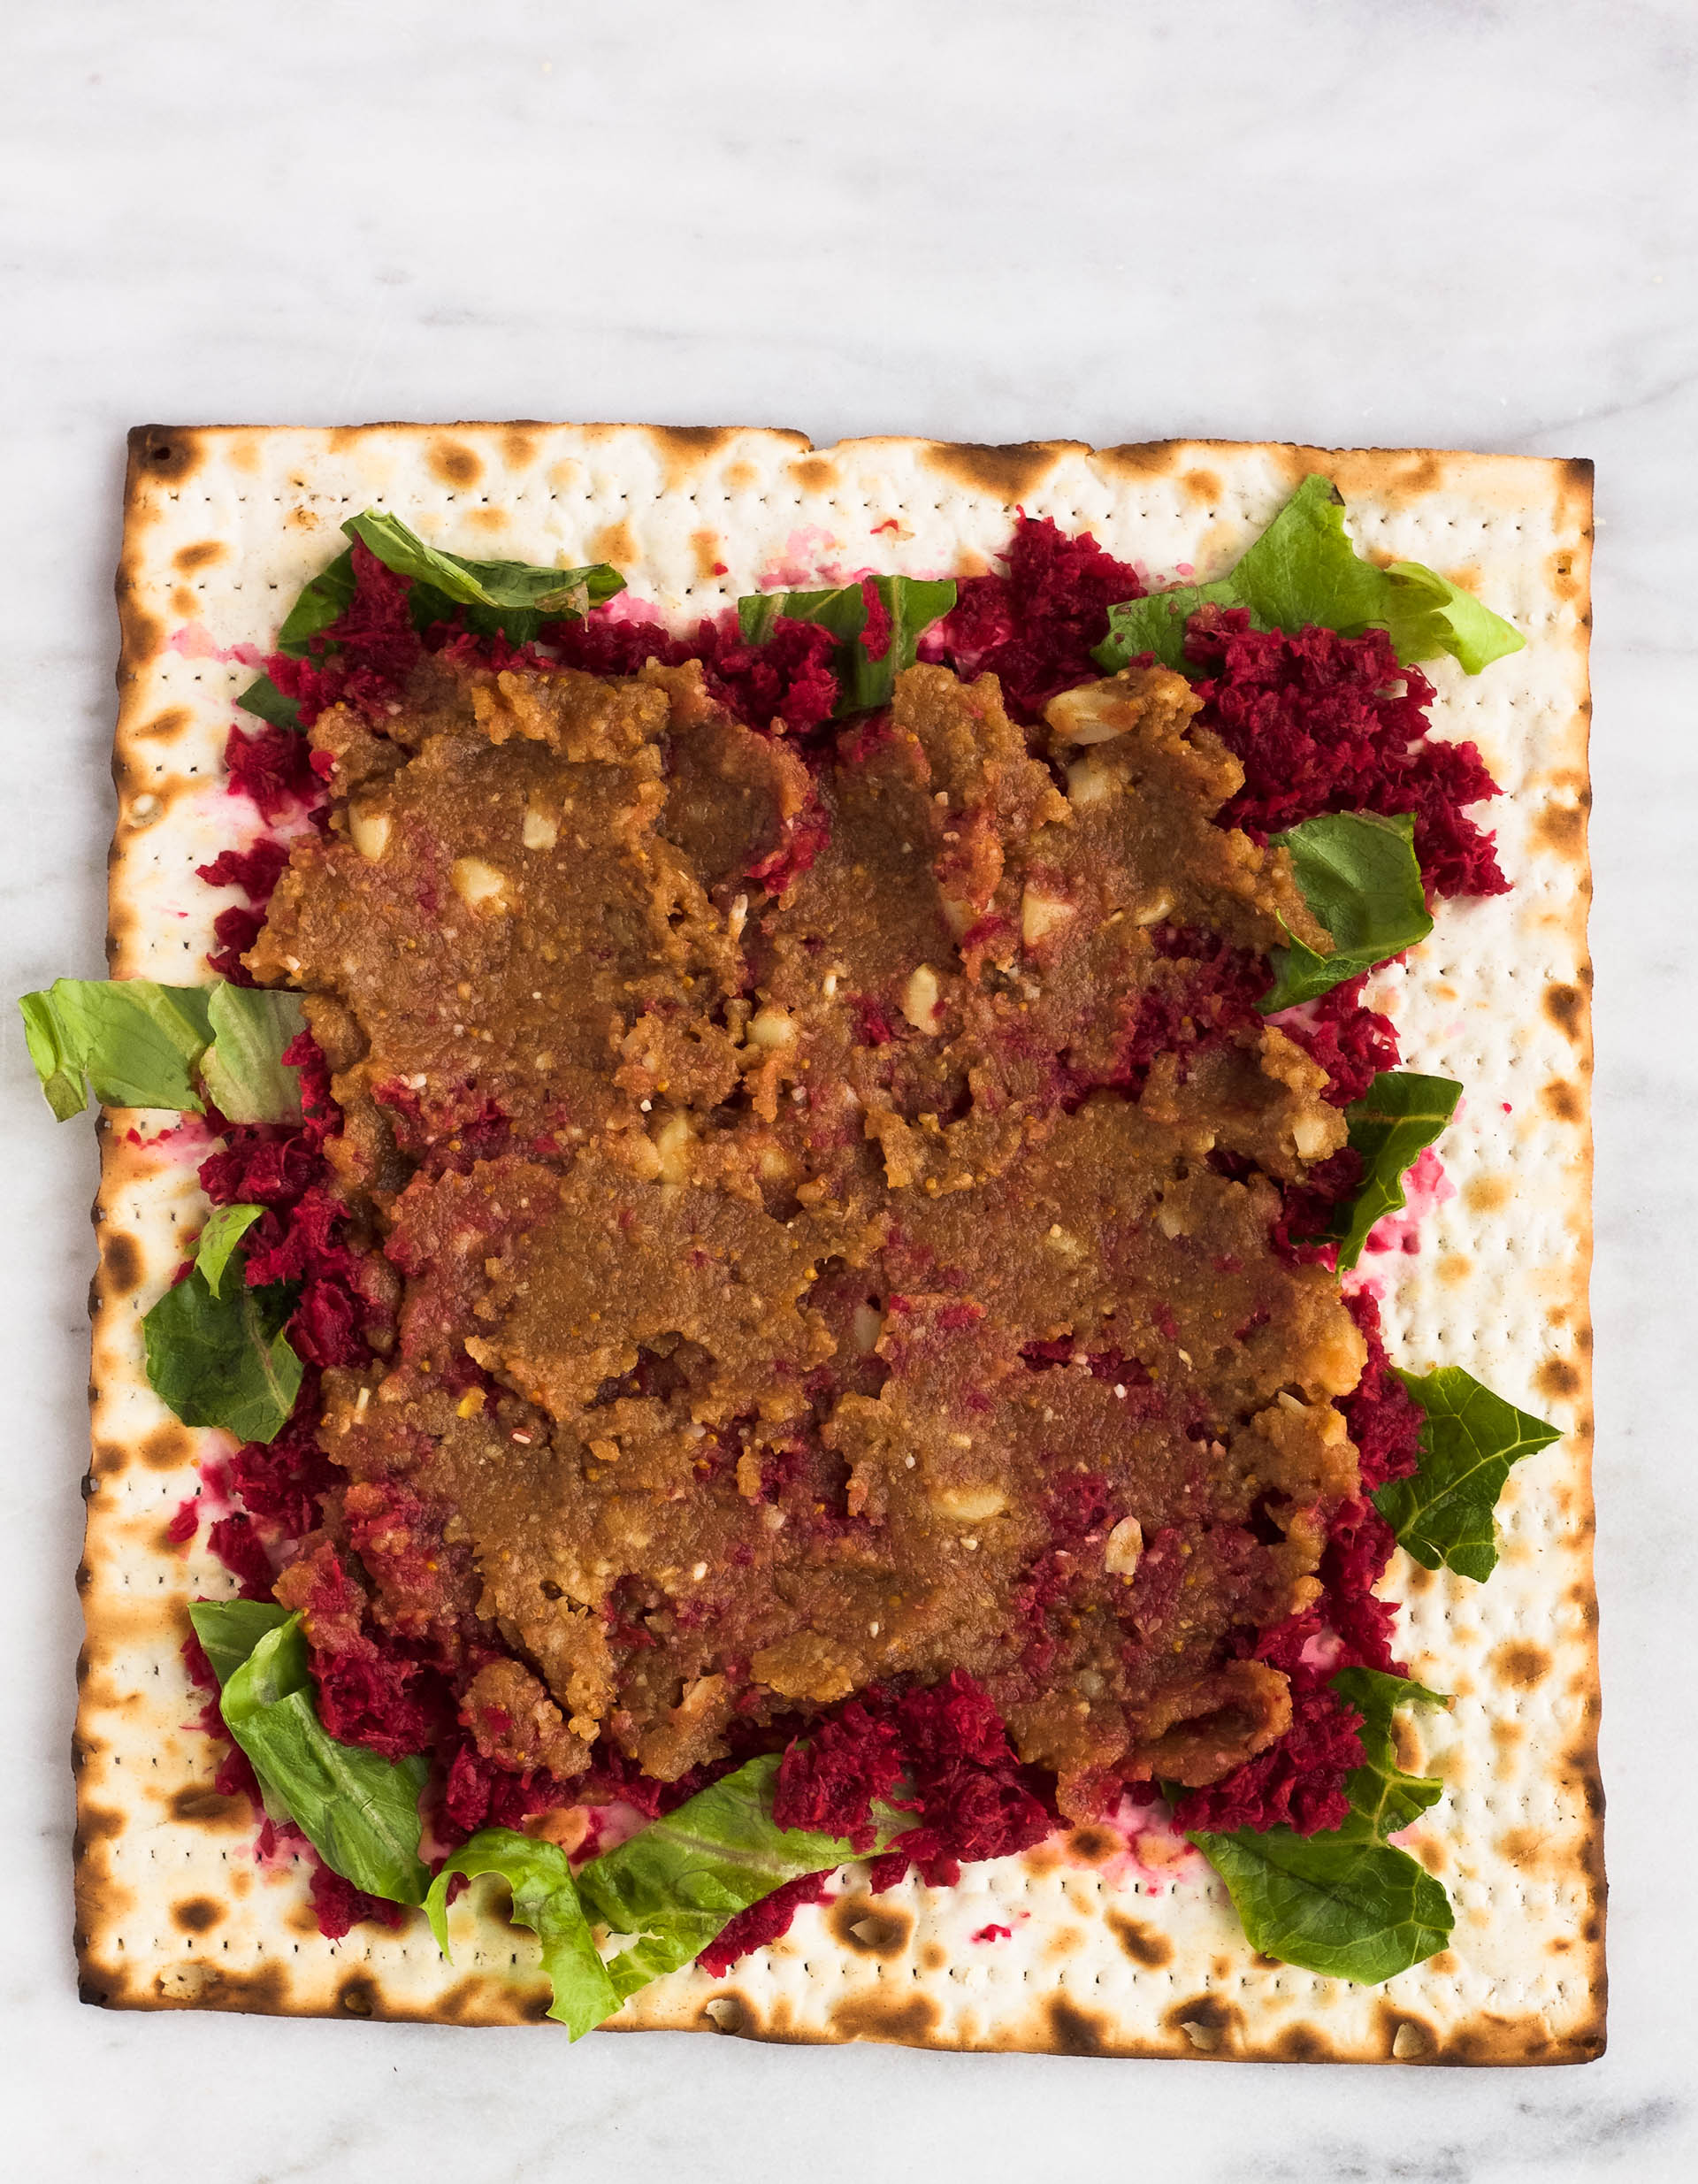 matzah with romaine lettuce, charoset and horseradish